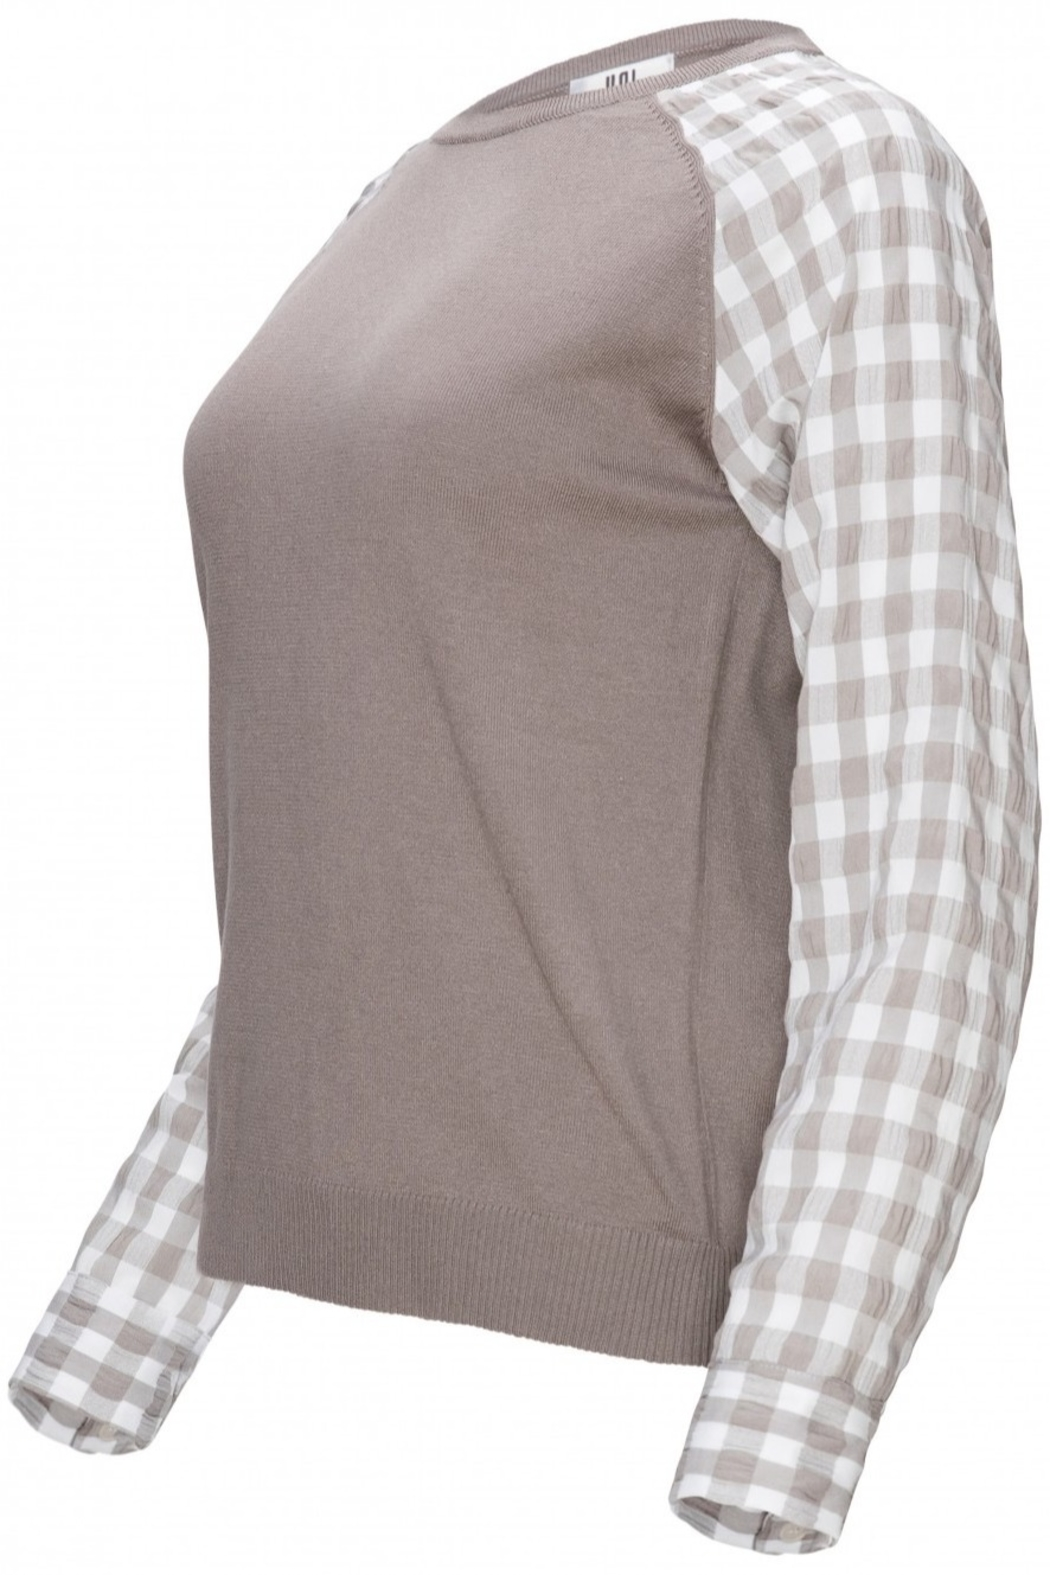 Yal NY Grey sweater with grey/white checkered sleeve - Front Full Image